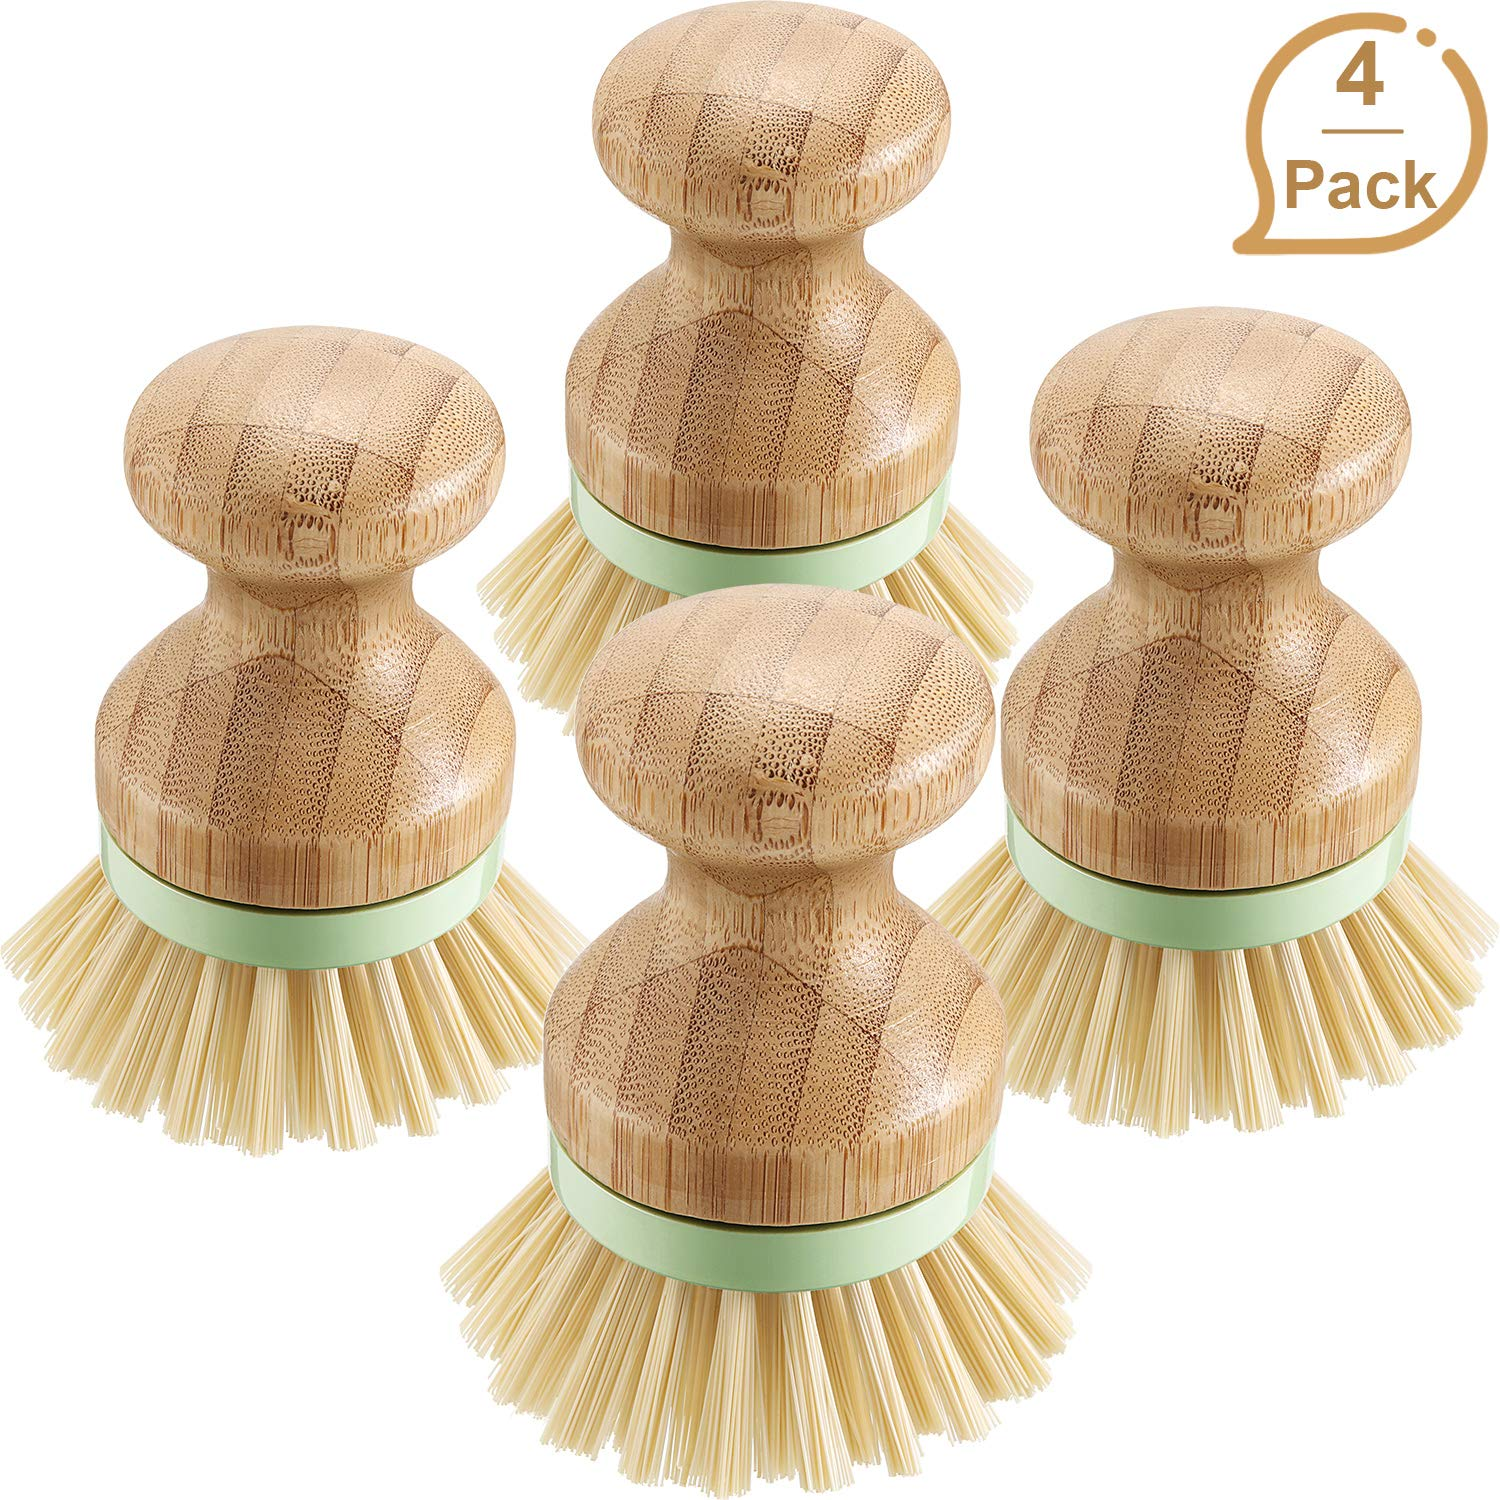 4 Pieces Bamboo Mini Scrub Brush Coconut Bristles Pot Brushes Dish Scrubber for Cast Iron Skillet, Kitchen Sink, Bathroom, Household Cleaning (Style A)